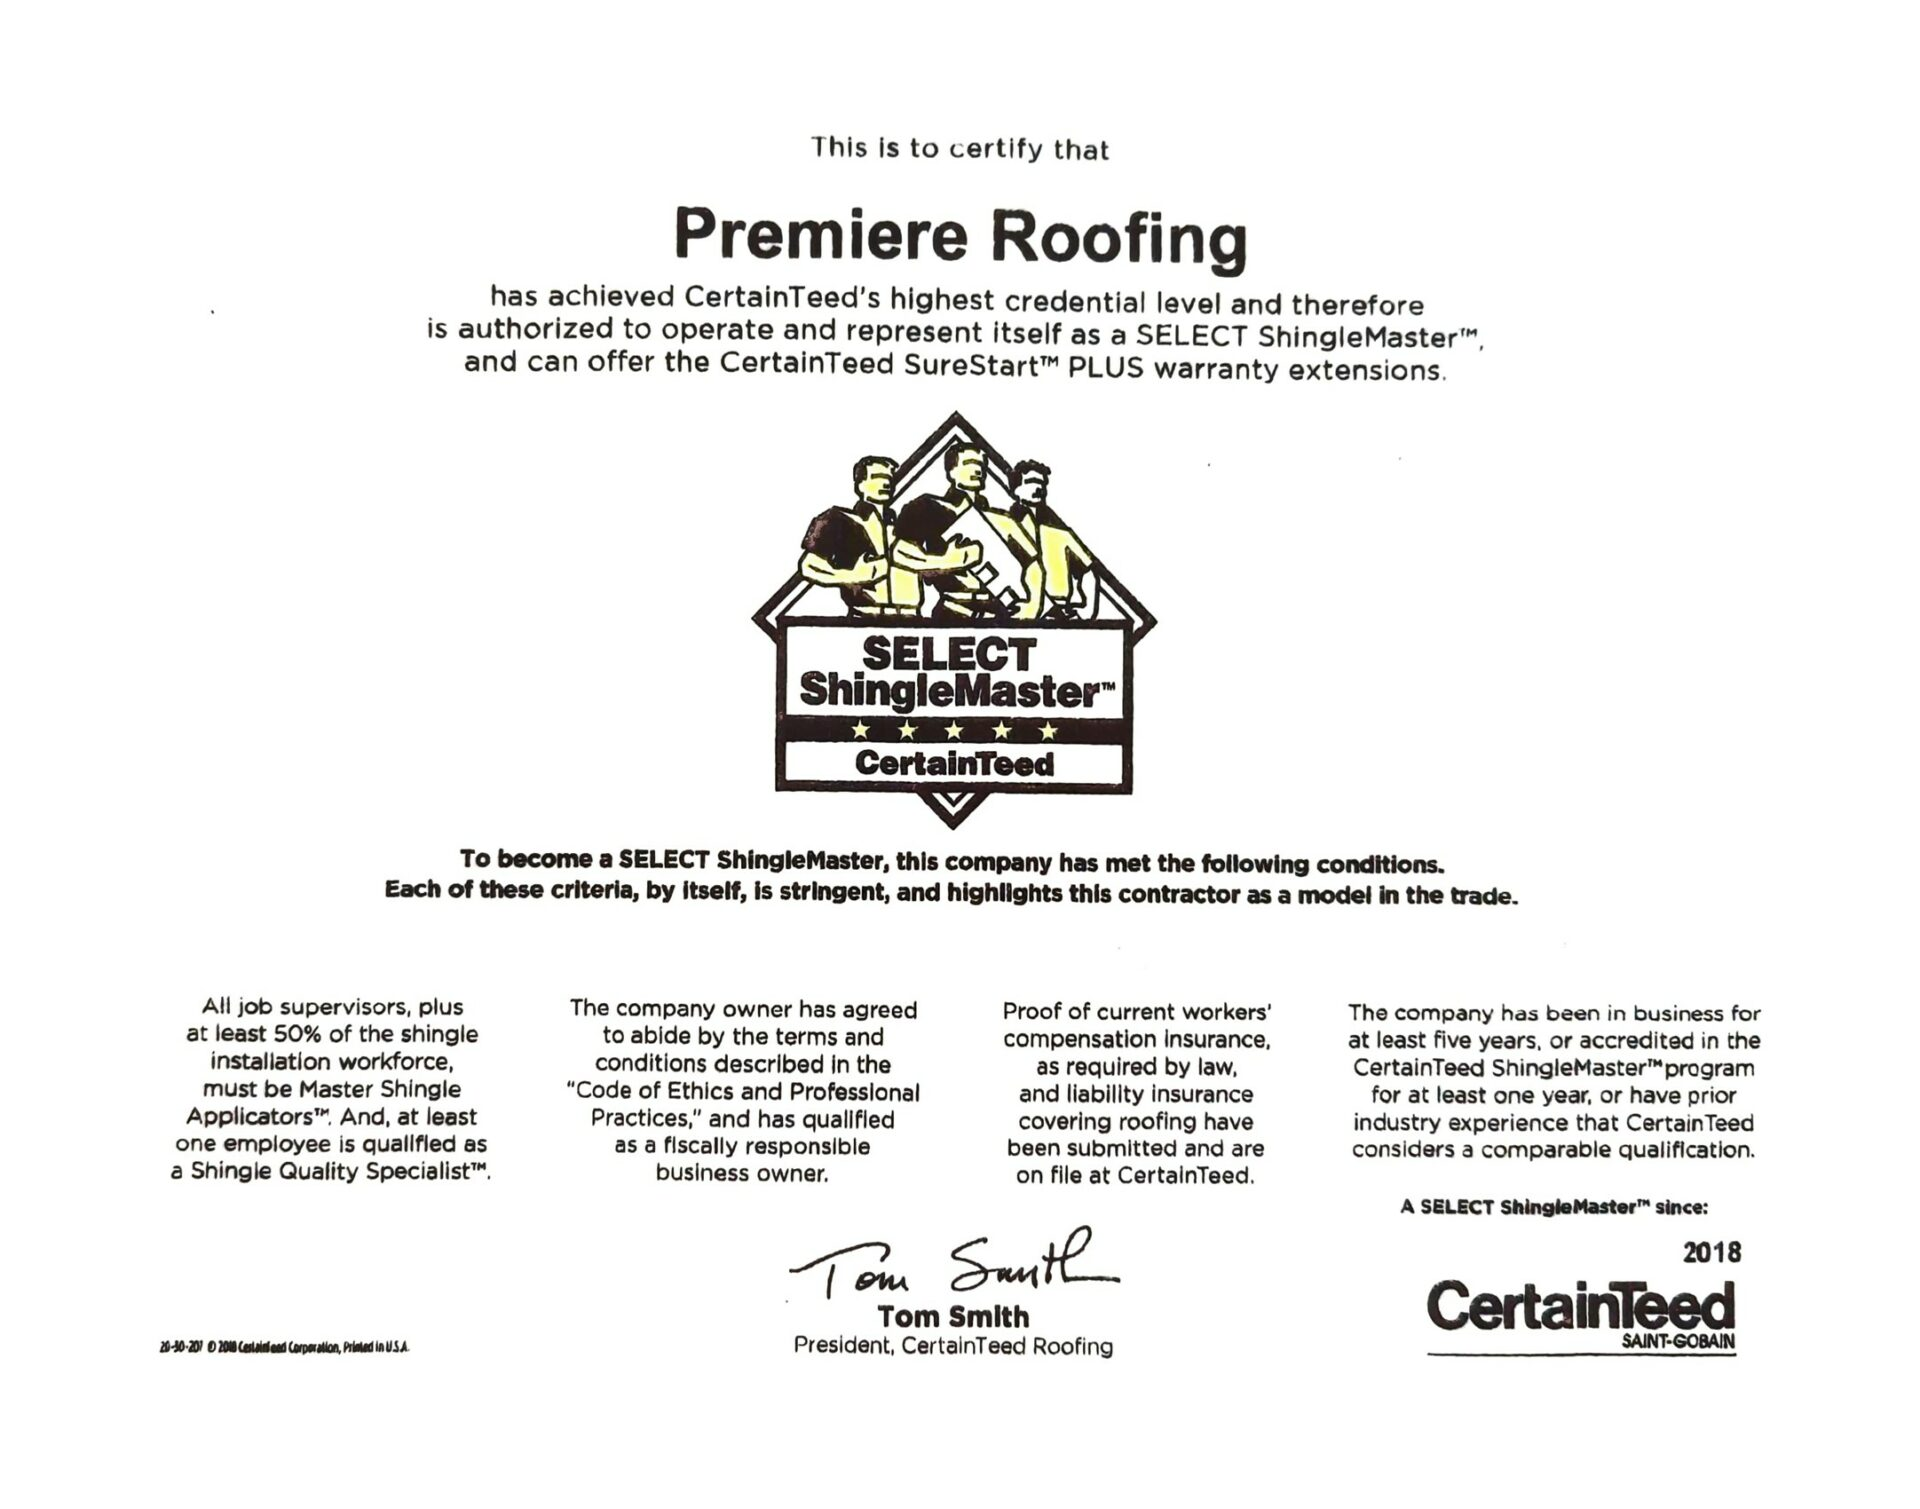 Select Shinglemaster Premiere Roofing